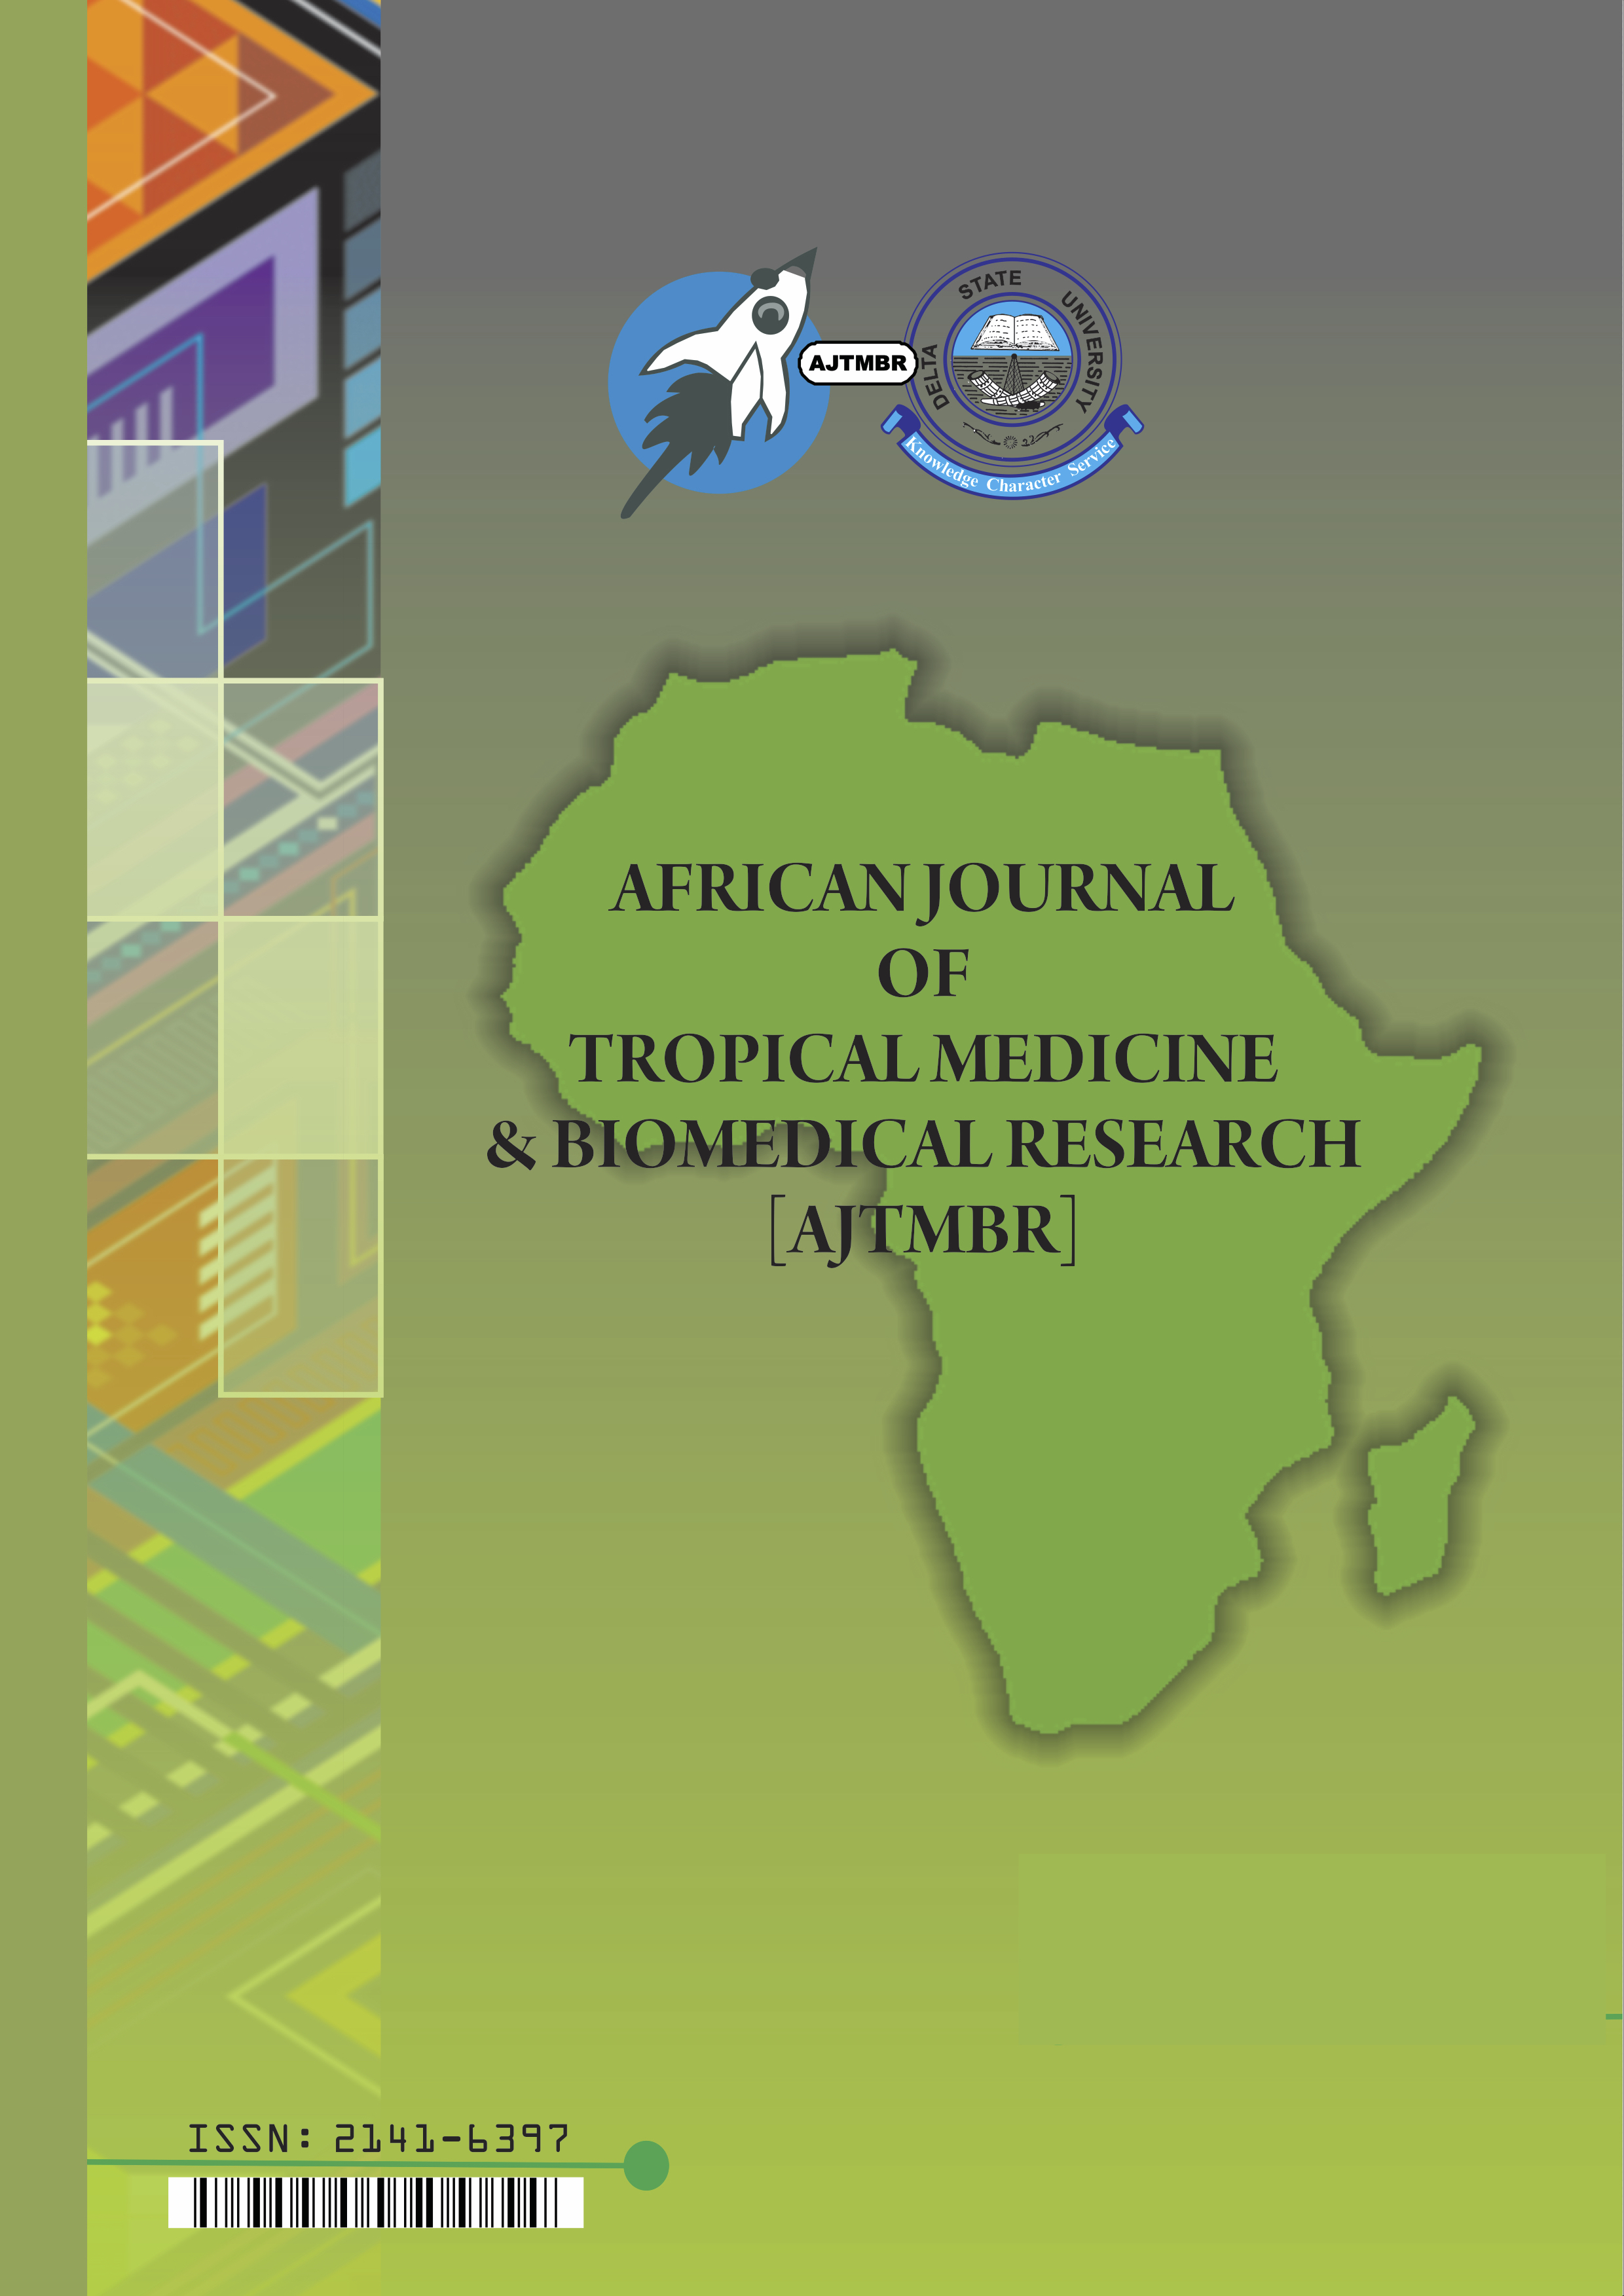 View Vol. 3 No. 1: African Journal of Tropical Medicine and Biomedical Research; March 2015